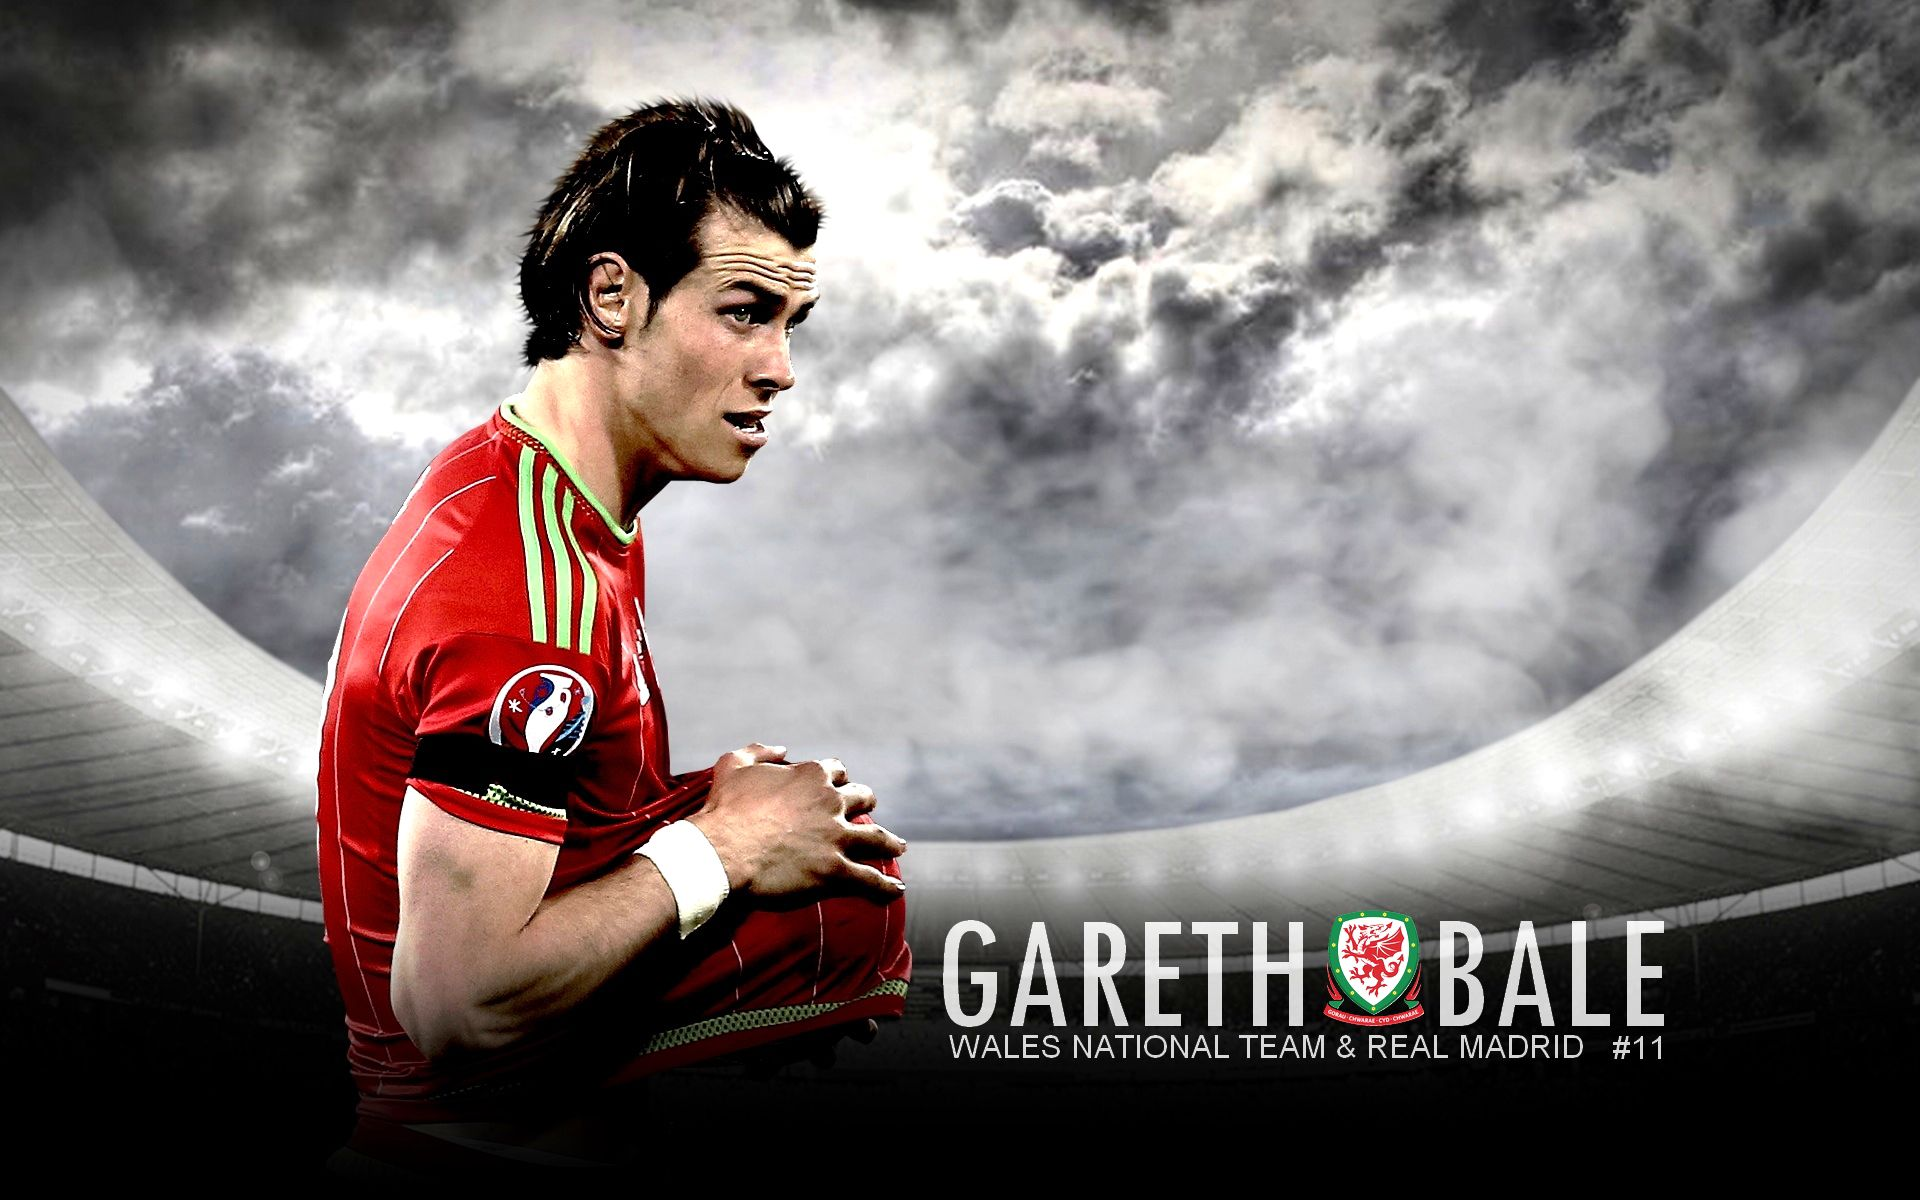 gareth bale wallpapers pictures images